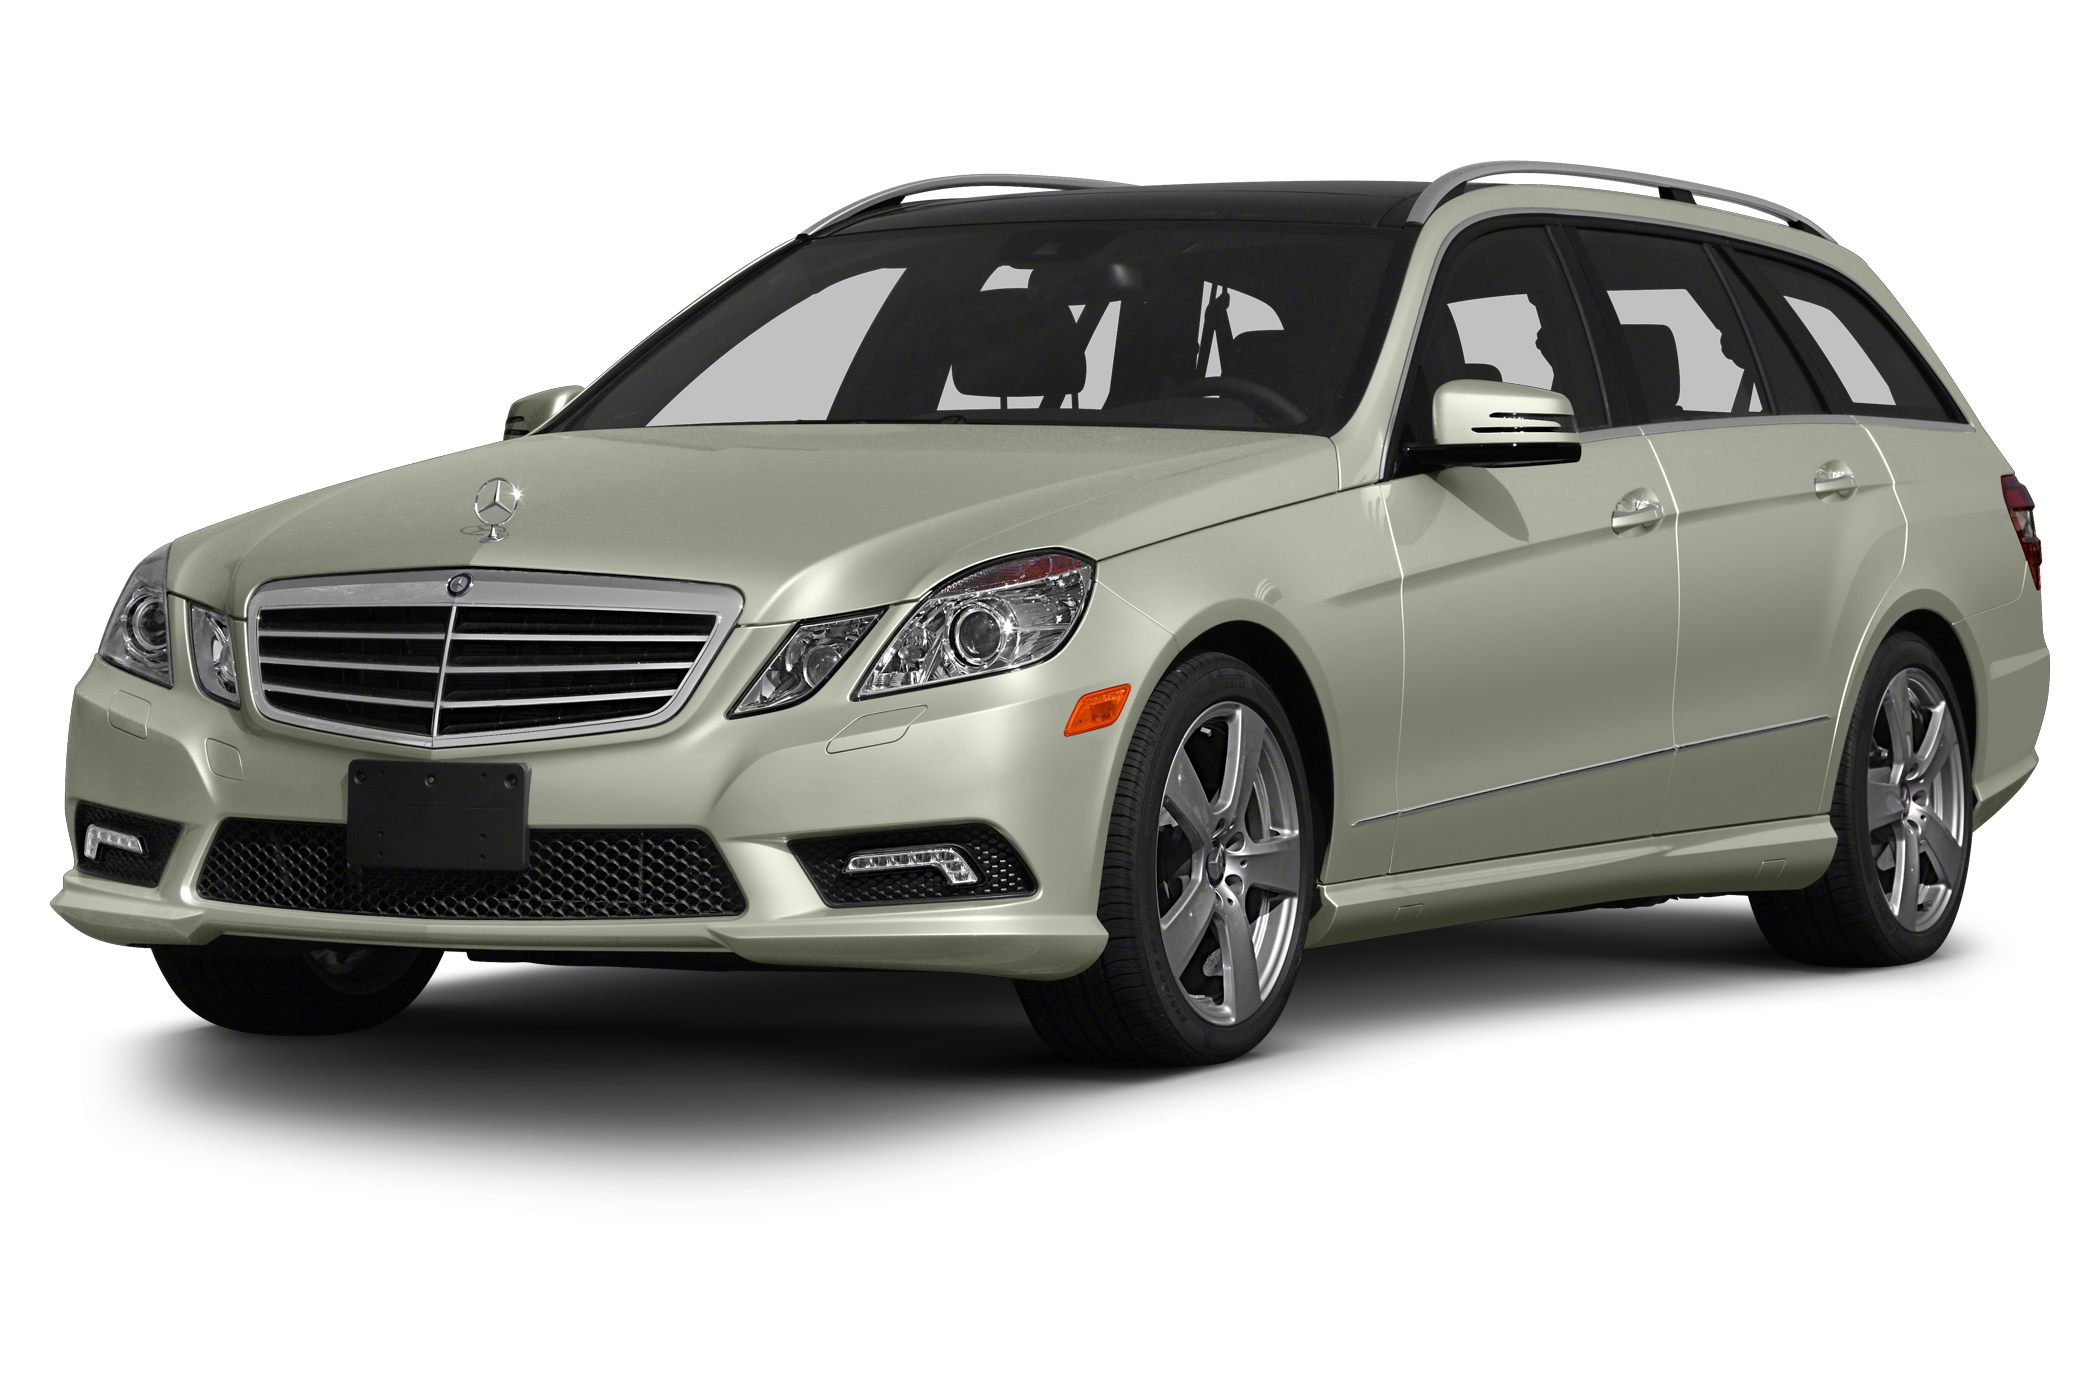 2013 Mercedes-Benz E-Class E350 4MATIC Sedan for sale in Lancaster for $36,998 with 17,269 miles.